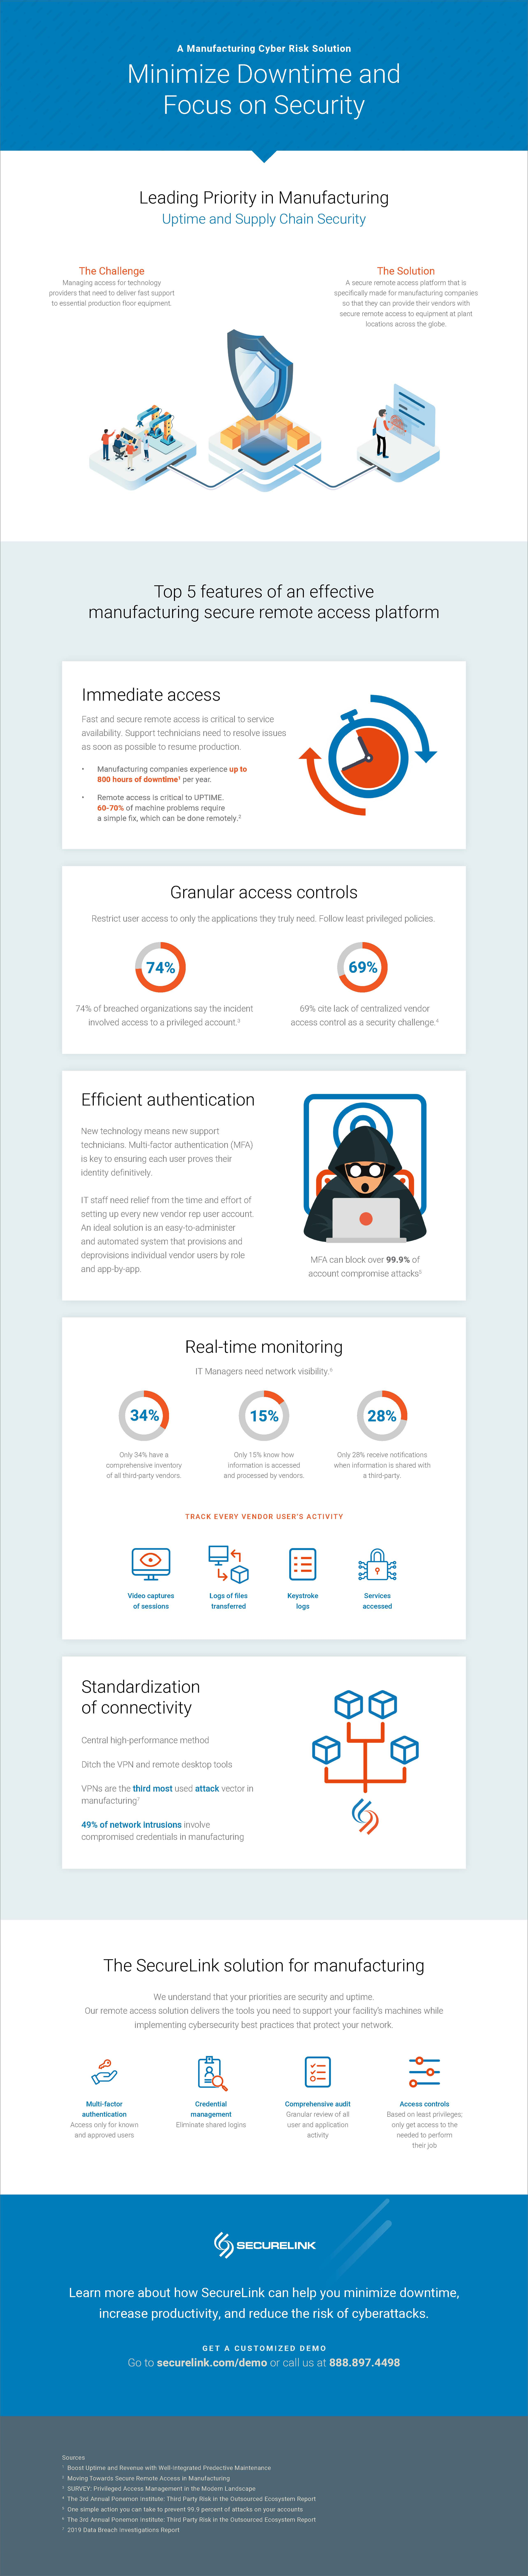 """SecureLink infographic on """"A Manufacturing Cyber Risk Solution to Minimize Downtime and Focus on Security"""""""